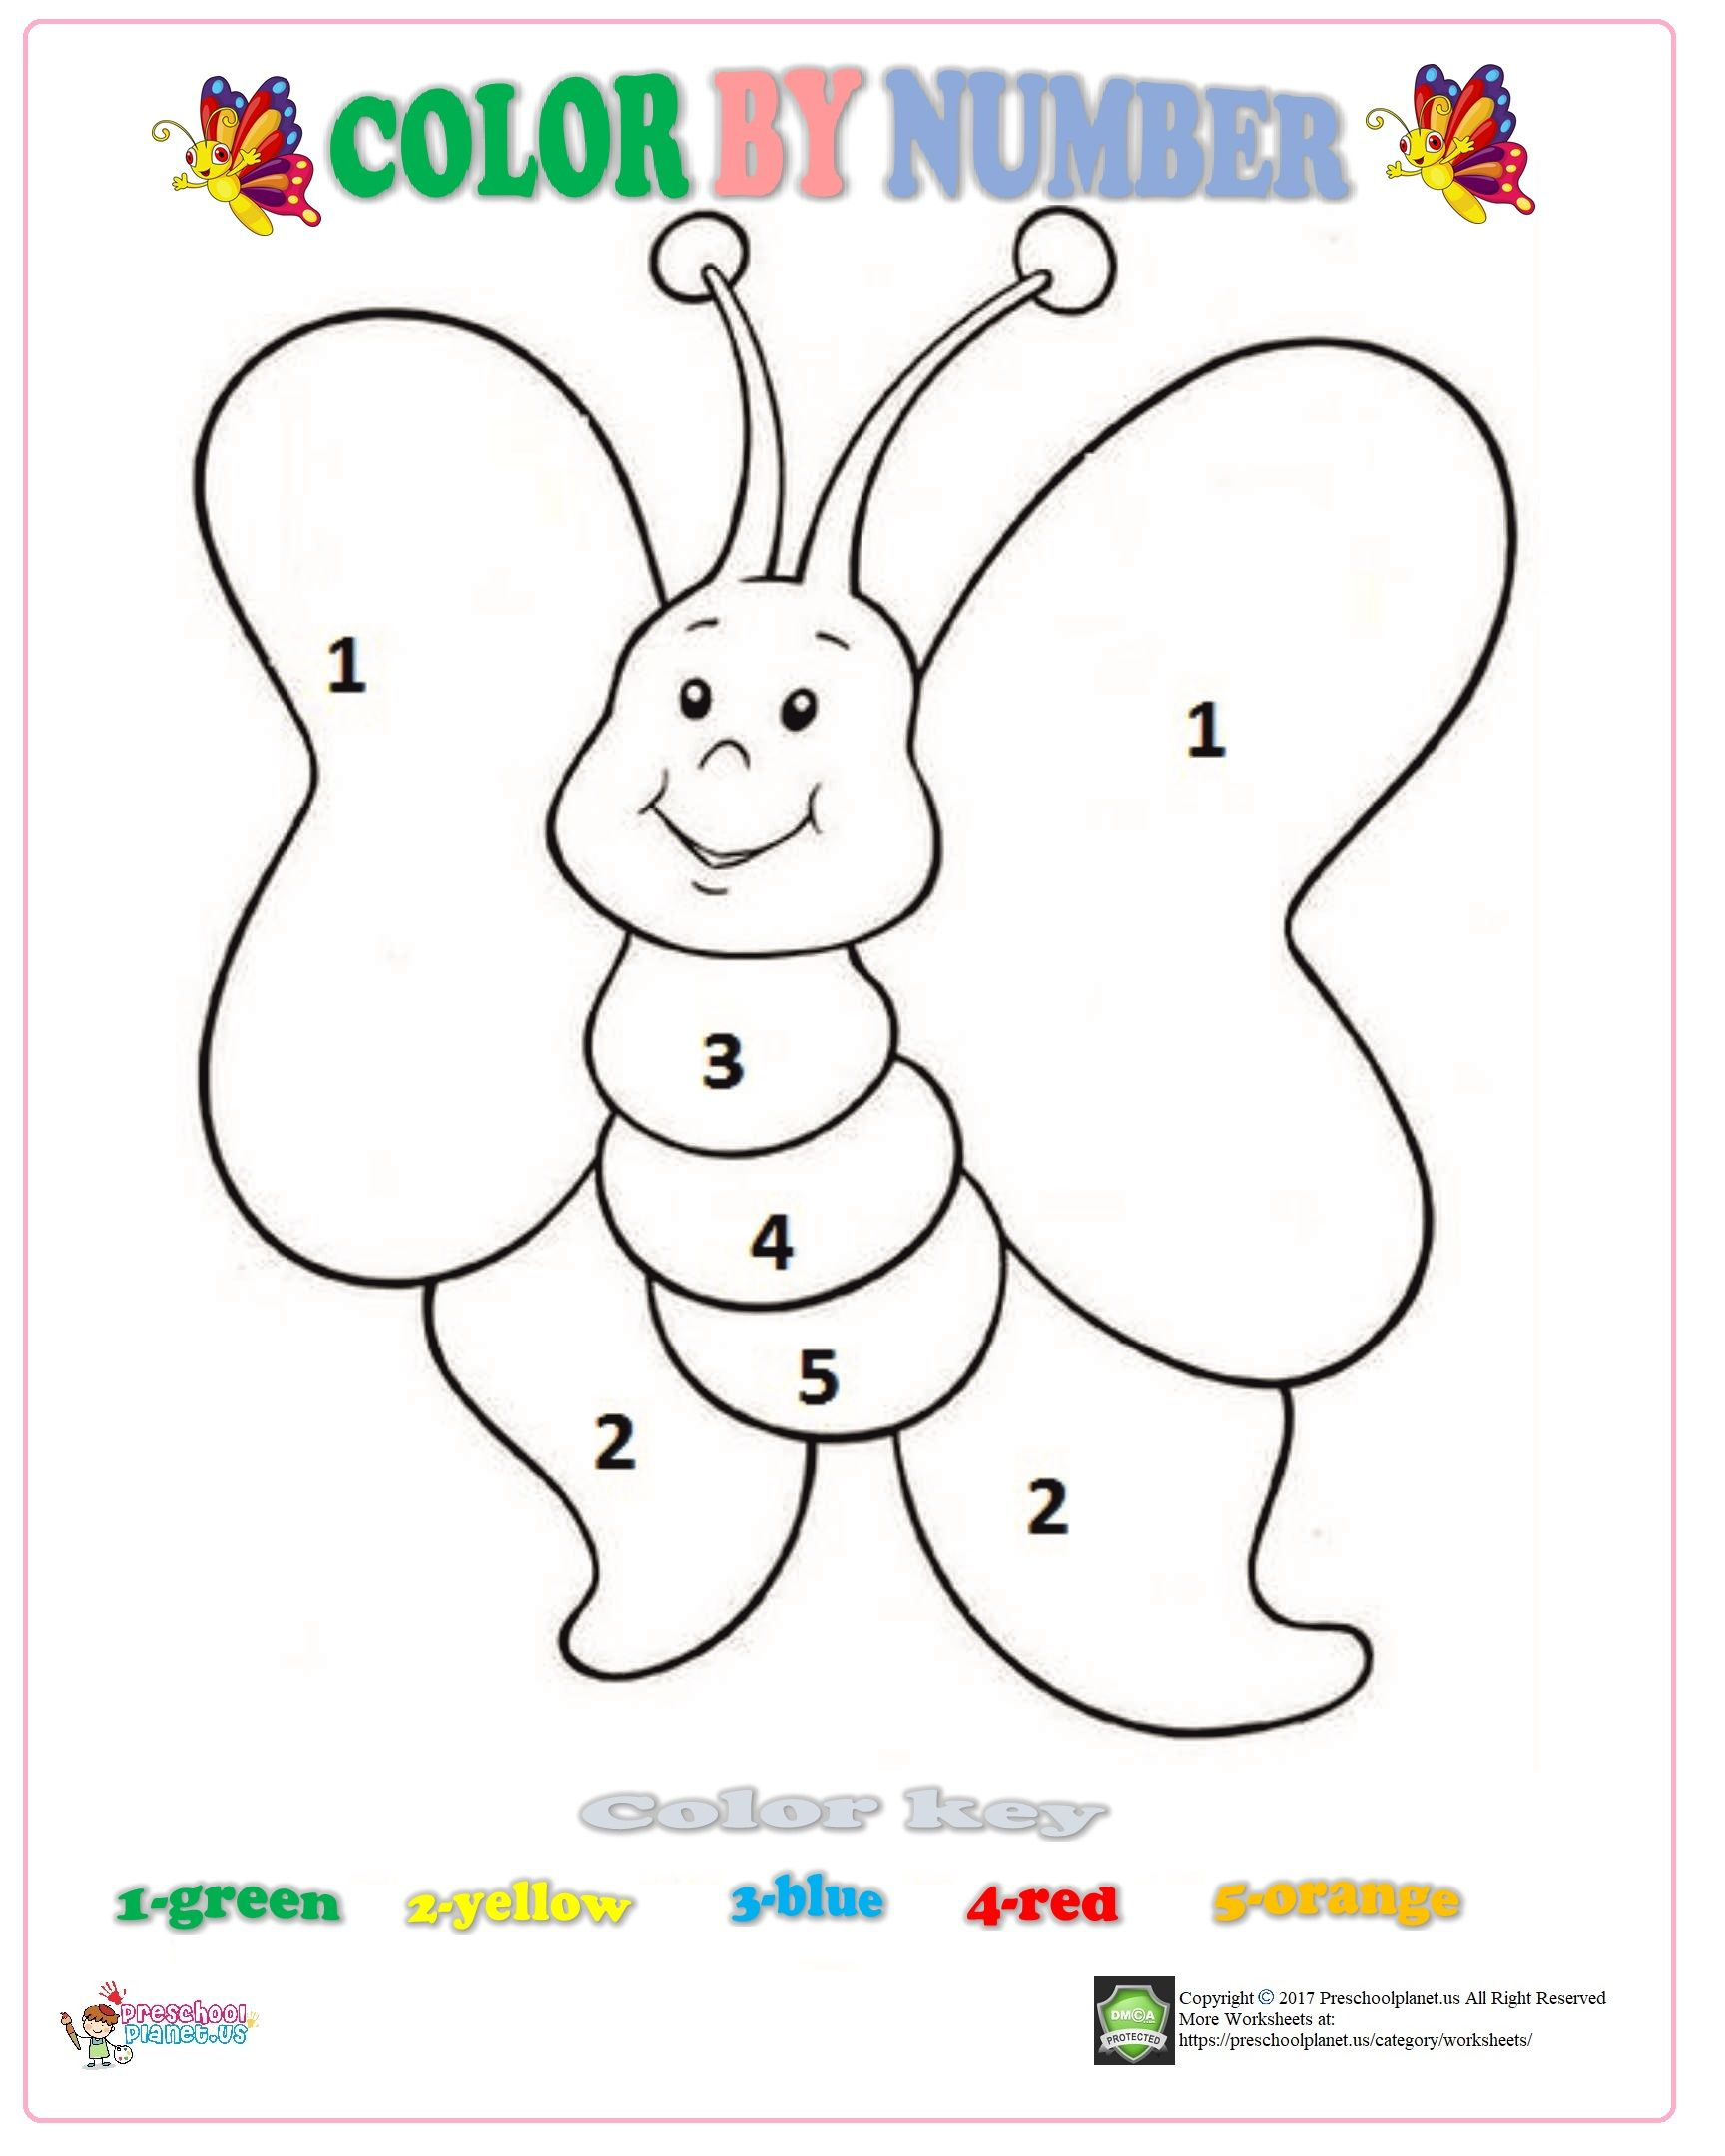 color by number butterfly worksheet Pintura pano de